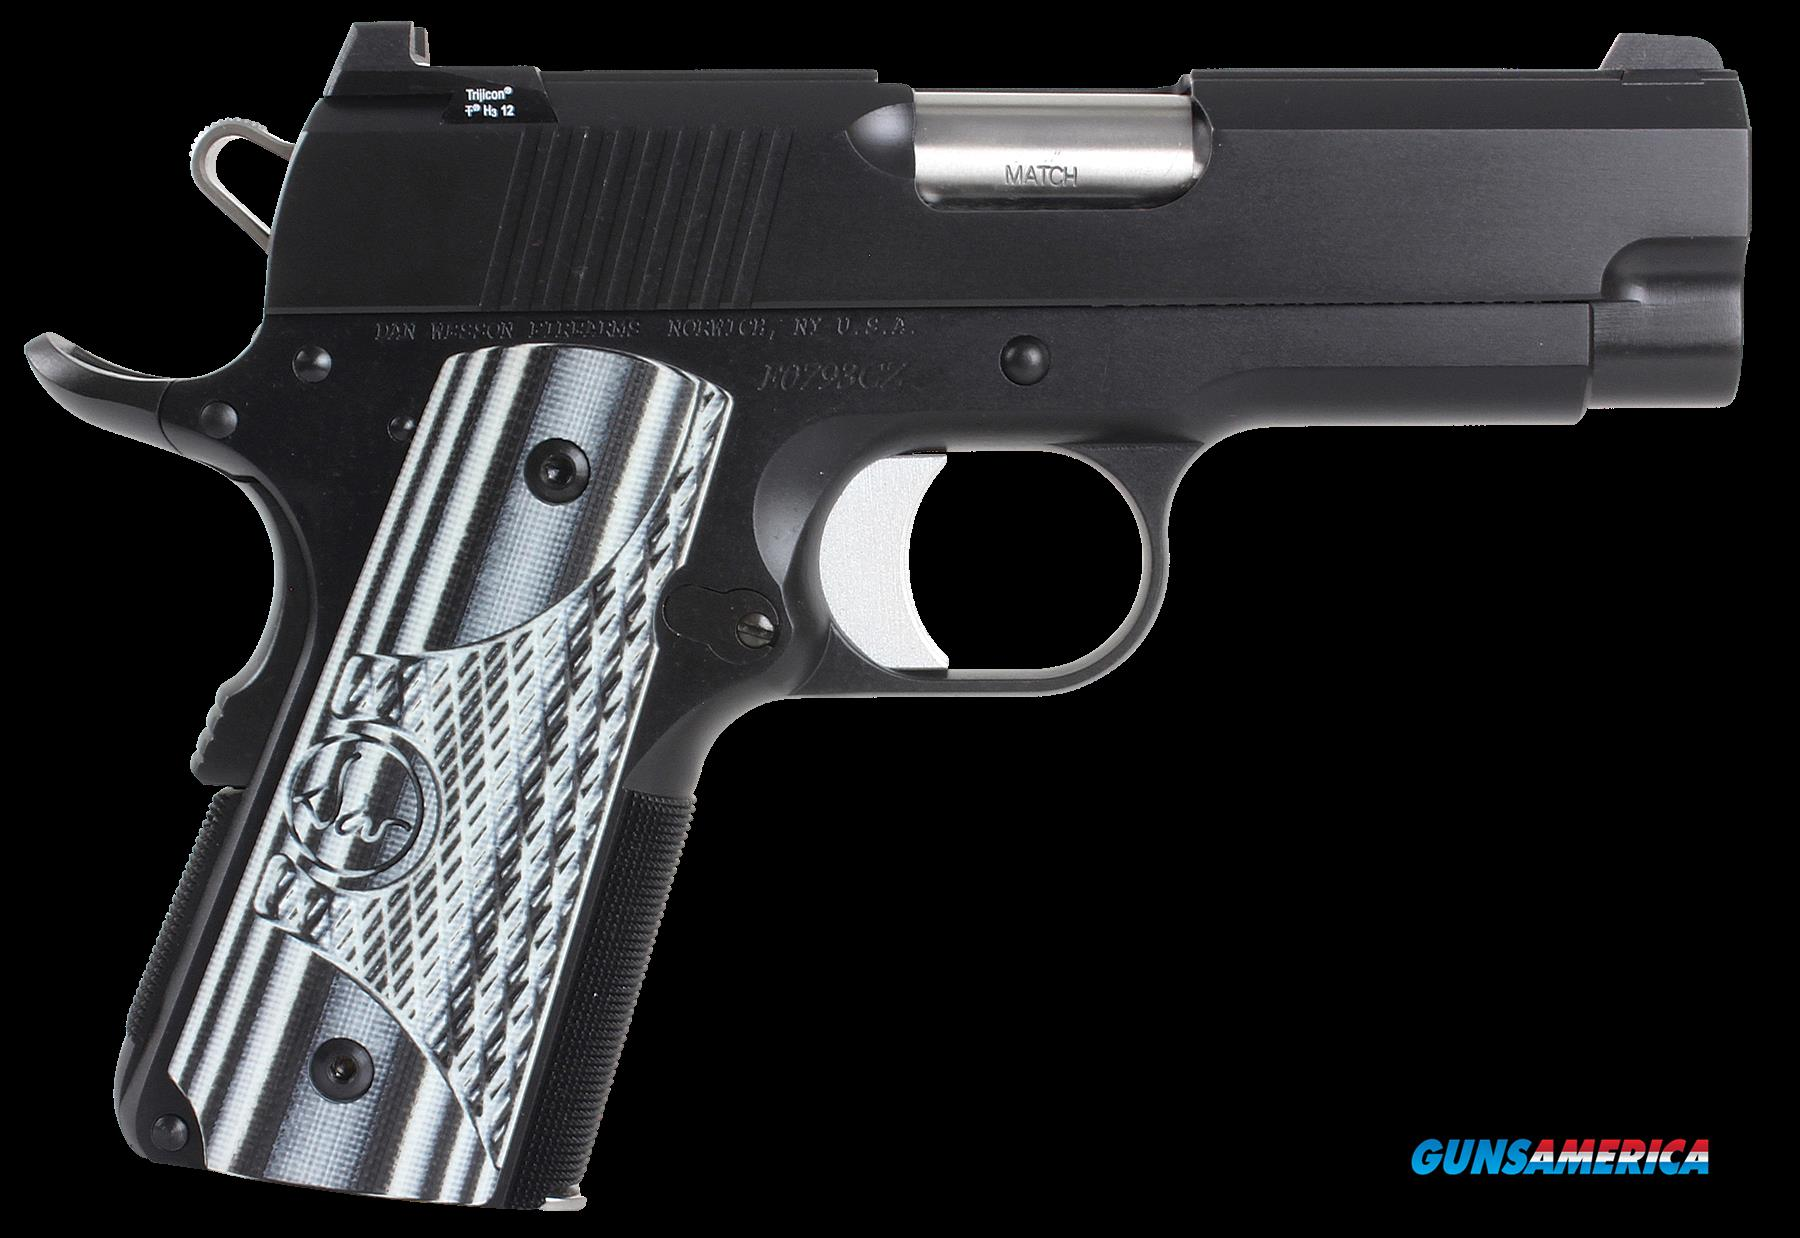 "Dan Wesson 01969 DW ECO 45 ACP 3.5"" 7+1 Black/Gray G10 Grip Black  Guns > Pistols > D Misc Pistols"